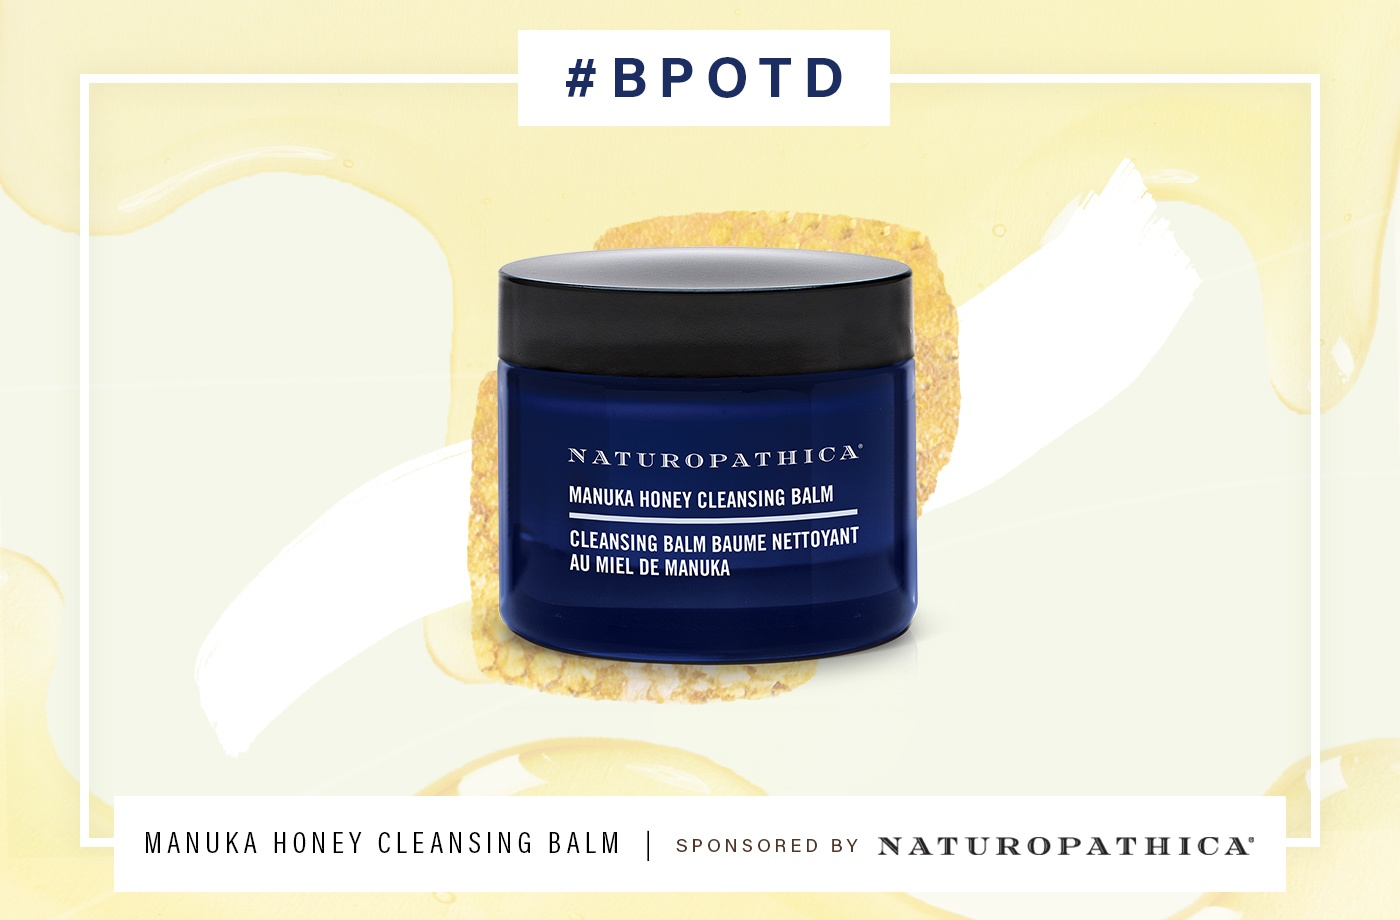 Thumbnail for #BPOTD: This balm combines Manuka honey and probiotics for the ultimate natural face-washing experience